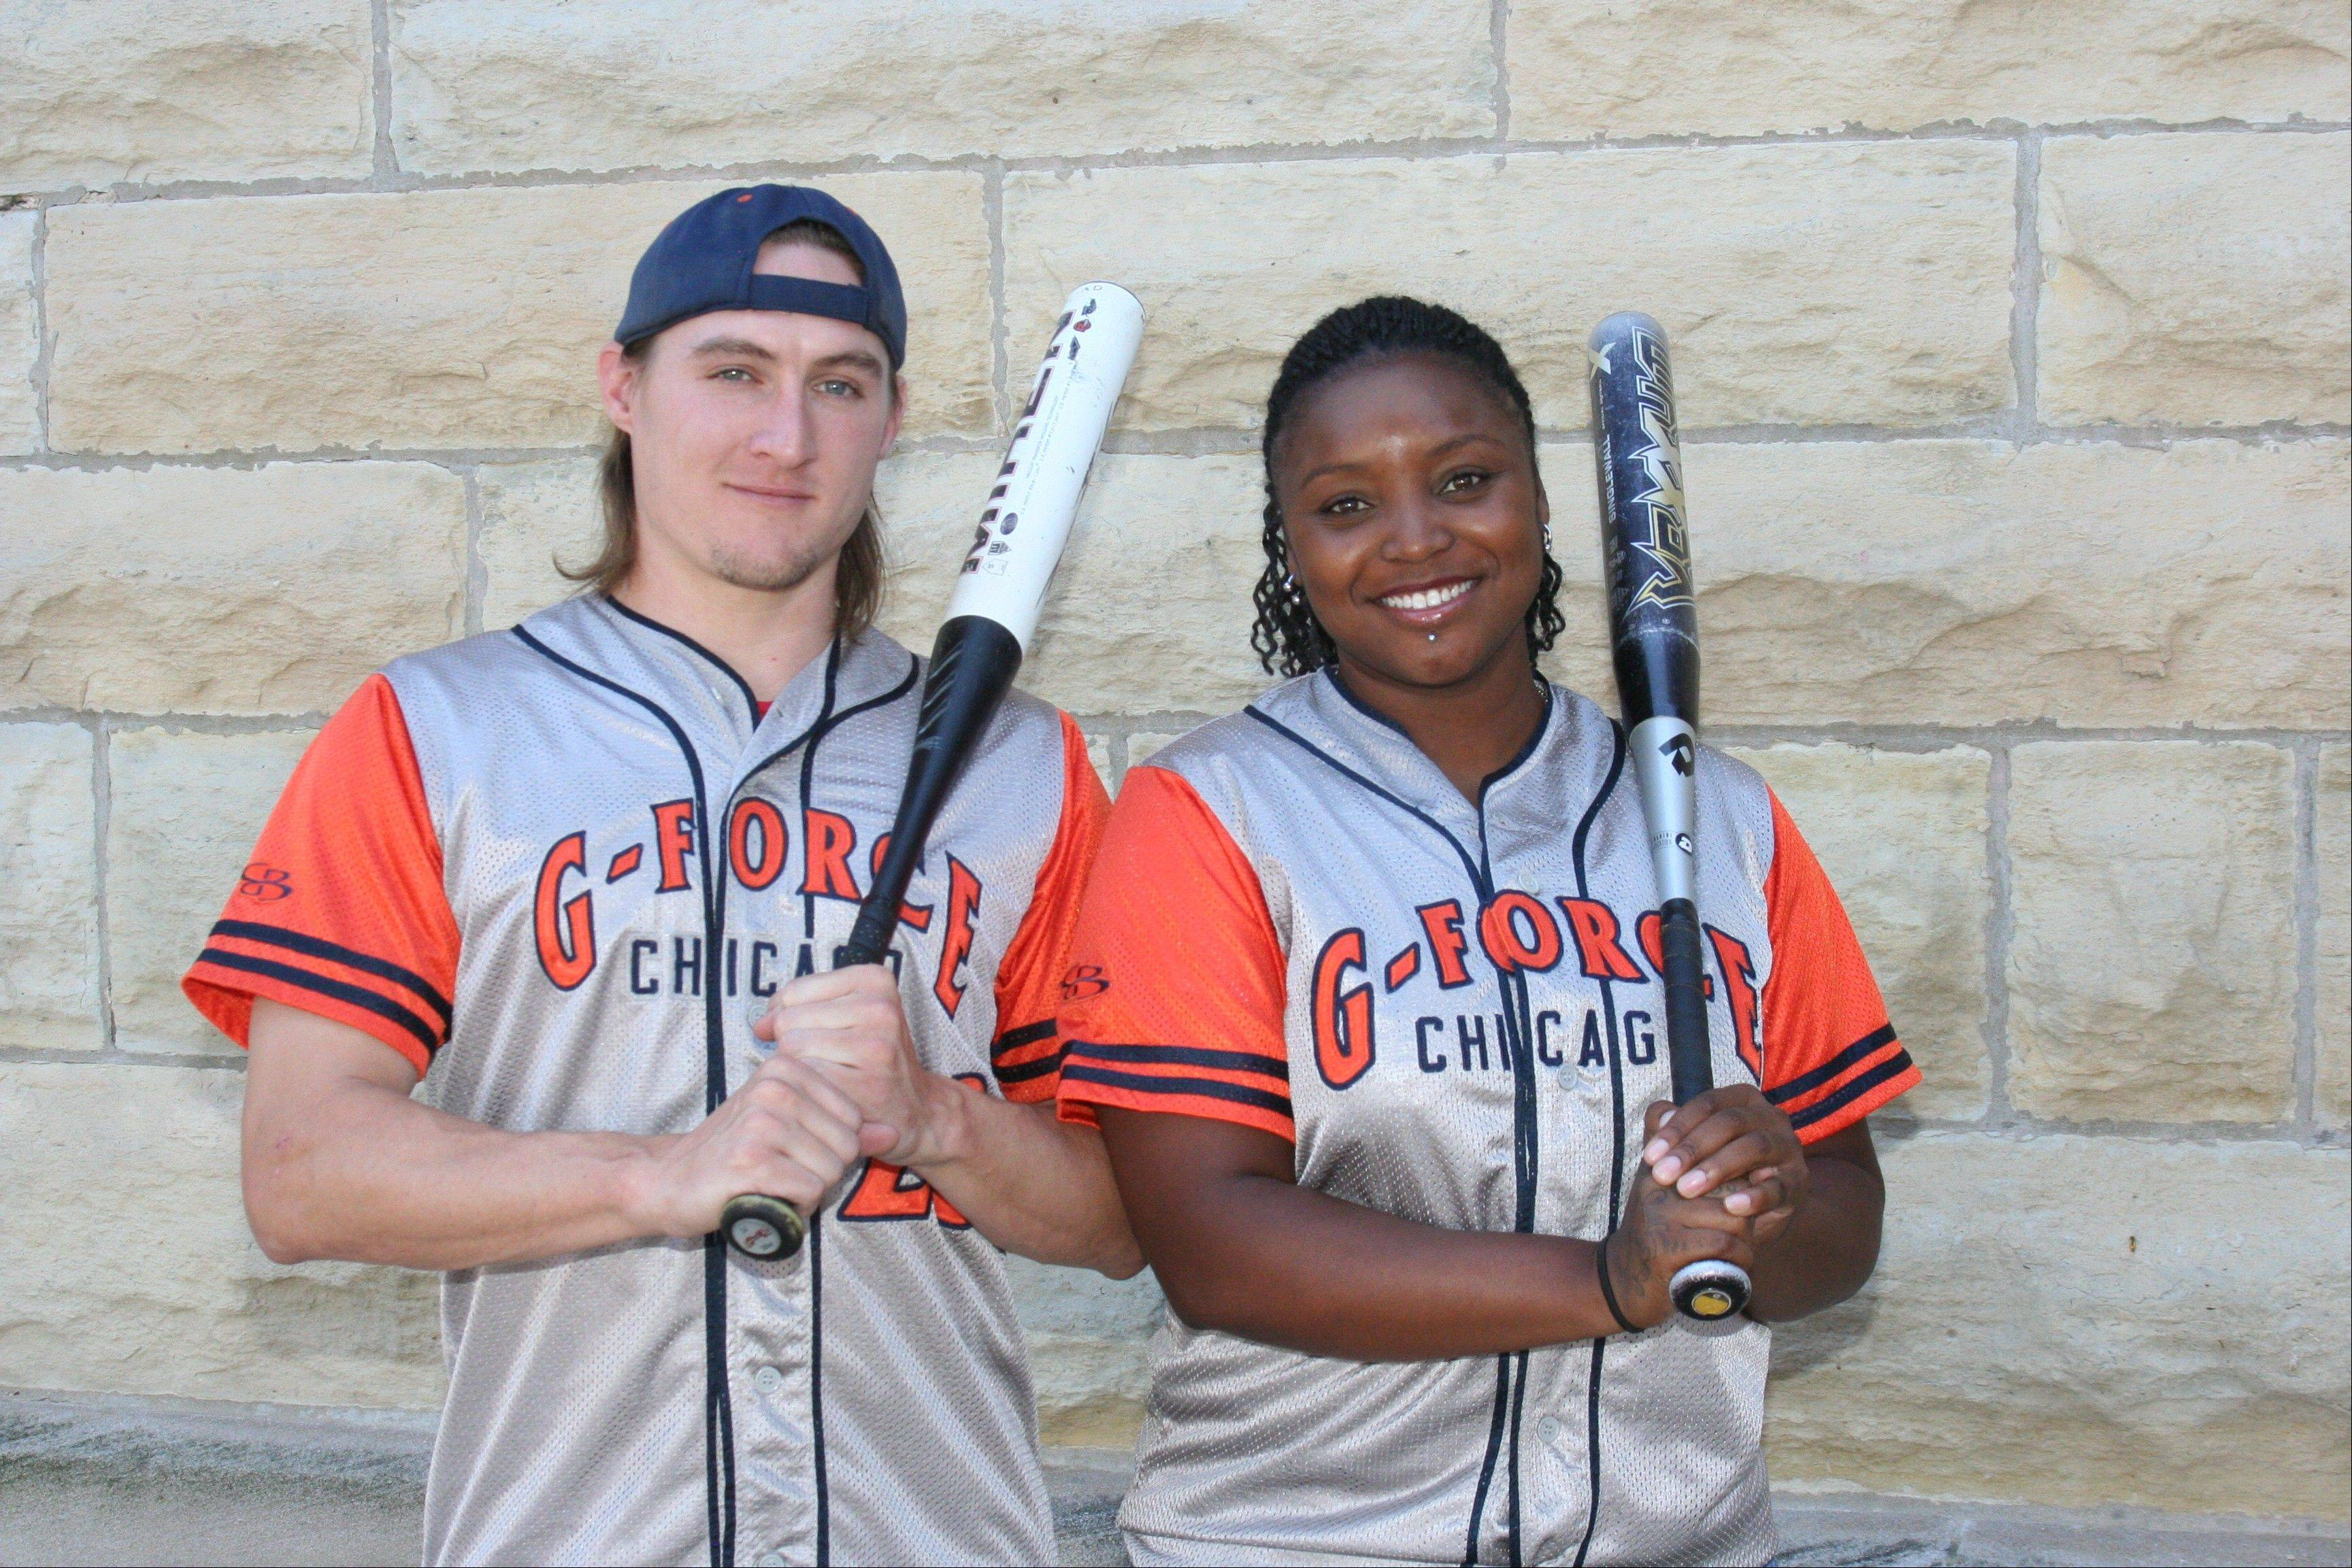 Suburban natives Paul Kenost and Tatania Gipson will be among the straight players competing in this week's Gay Softball World Series.